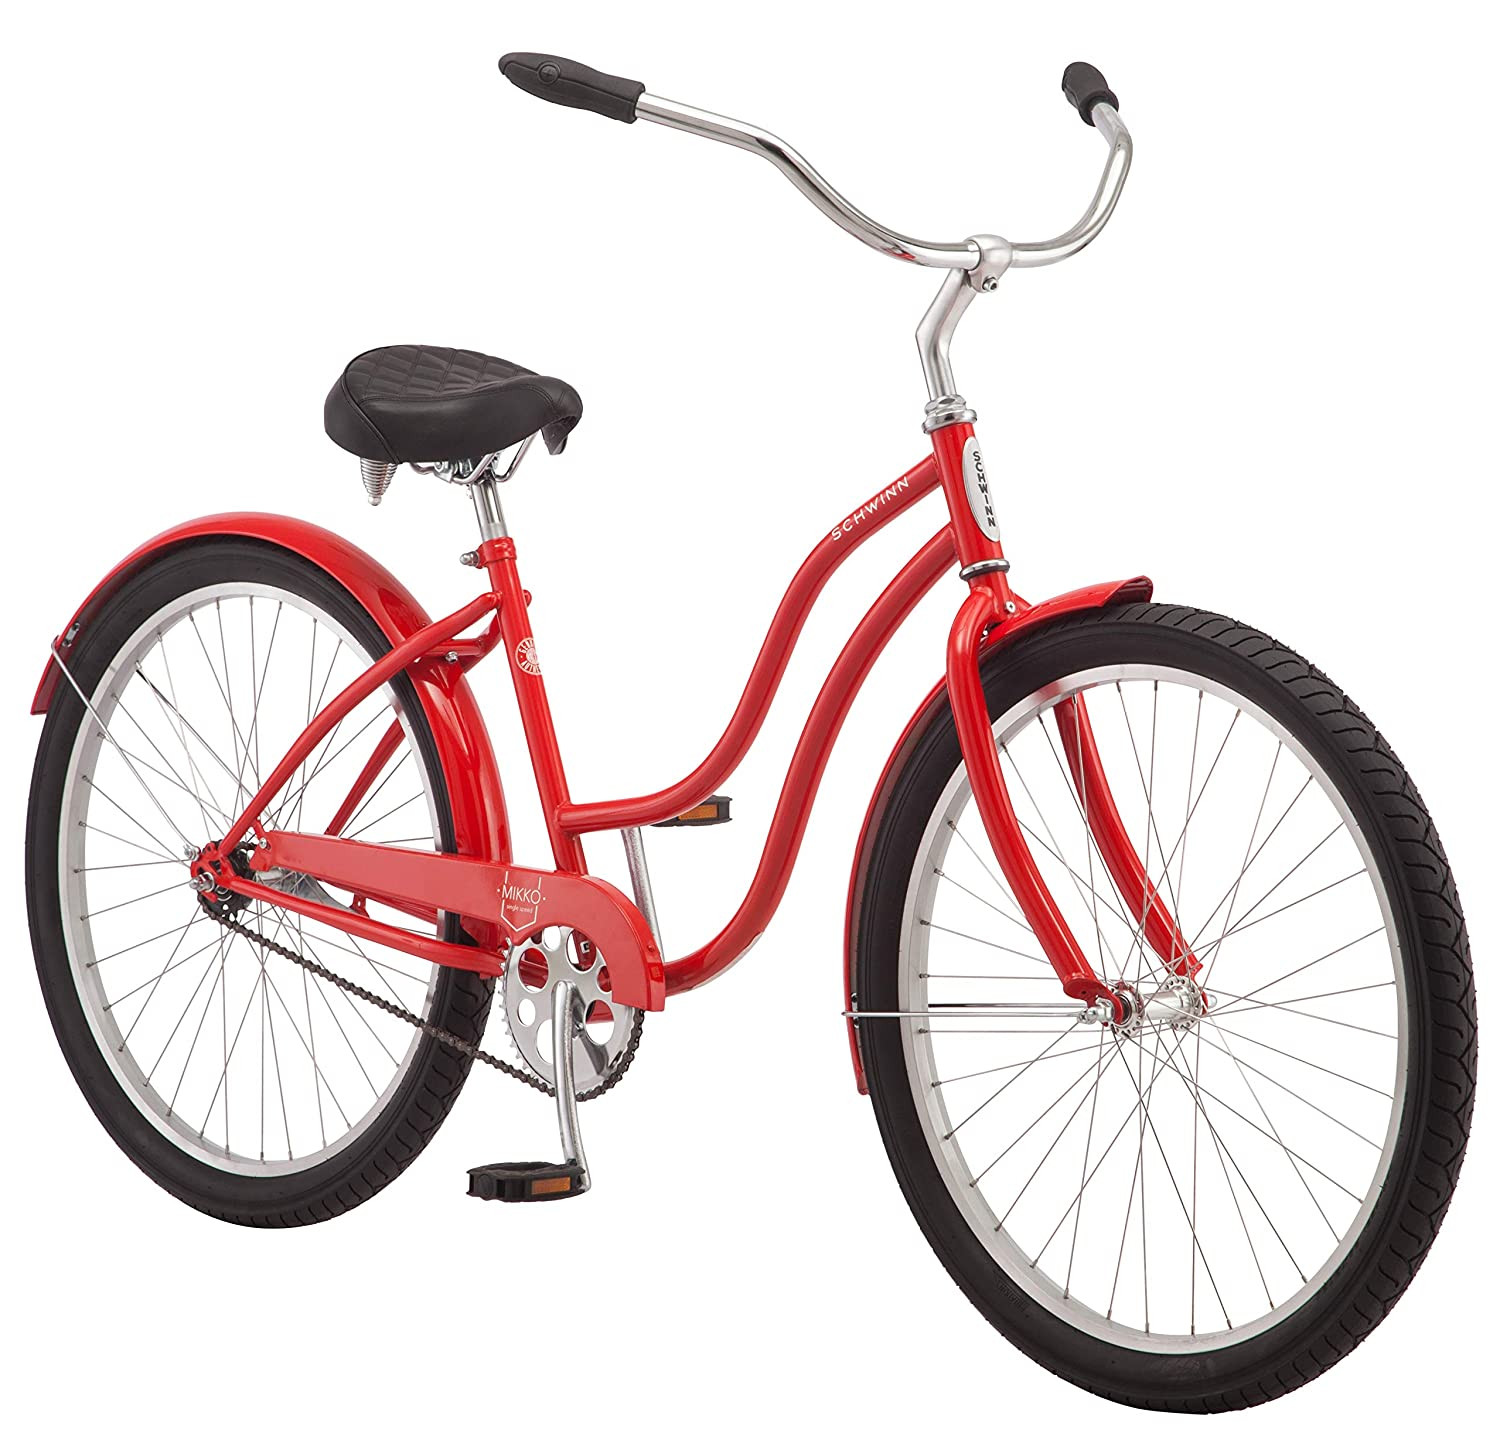 Schwinn Mikko Women s Cruiser Bike Line, Featuring 17-Inch Medium Steel Step-Through Frames, 1-3-7-Speed Drivetrains, Full Front and Rear Fenders, and 26-Inch Wheels, Navy, Purple, Red, and Teal